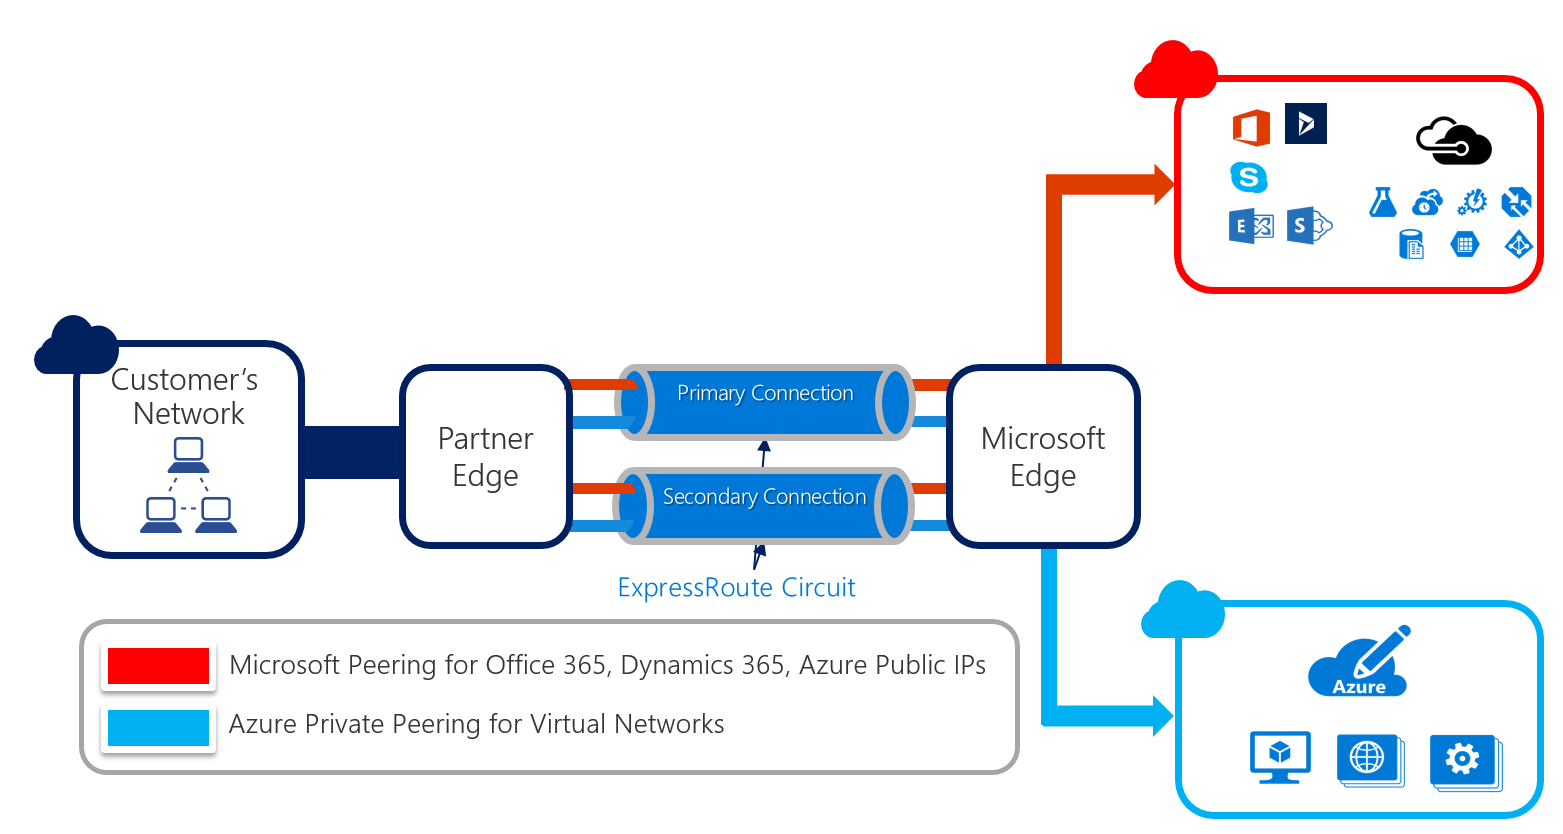 ExpressRoute with Microsoft peering and private peering